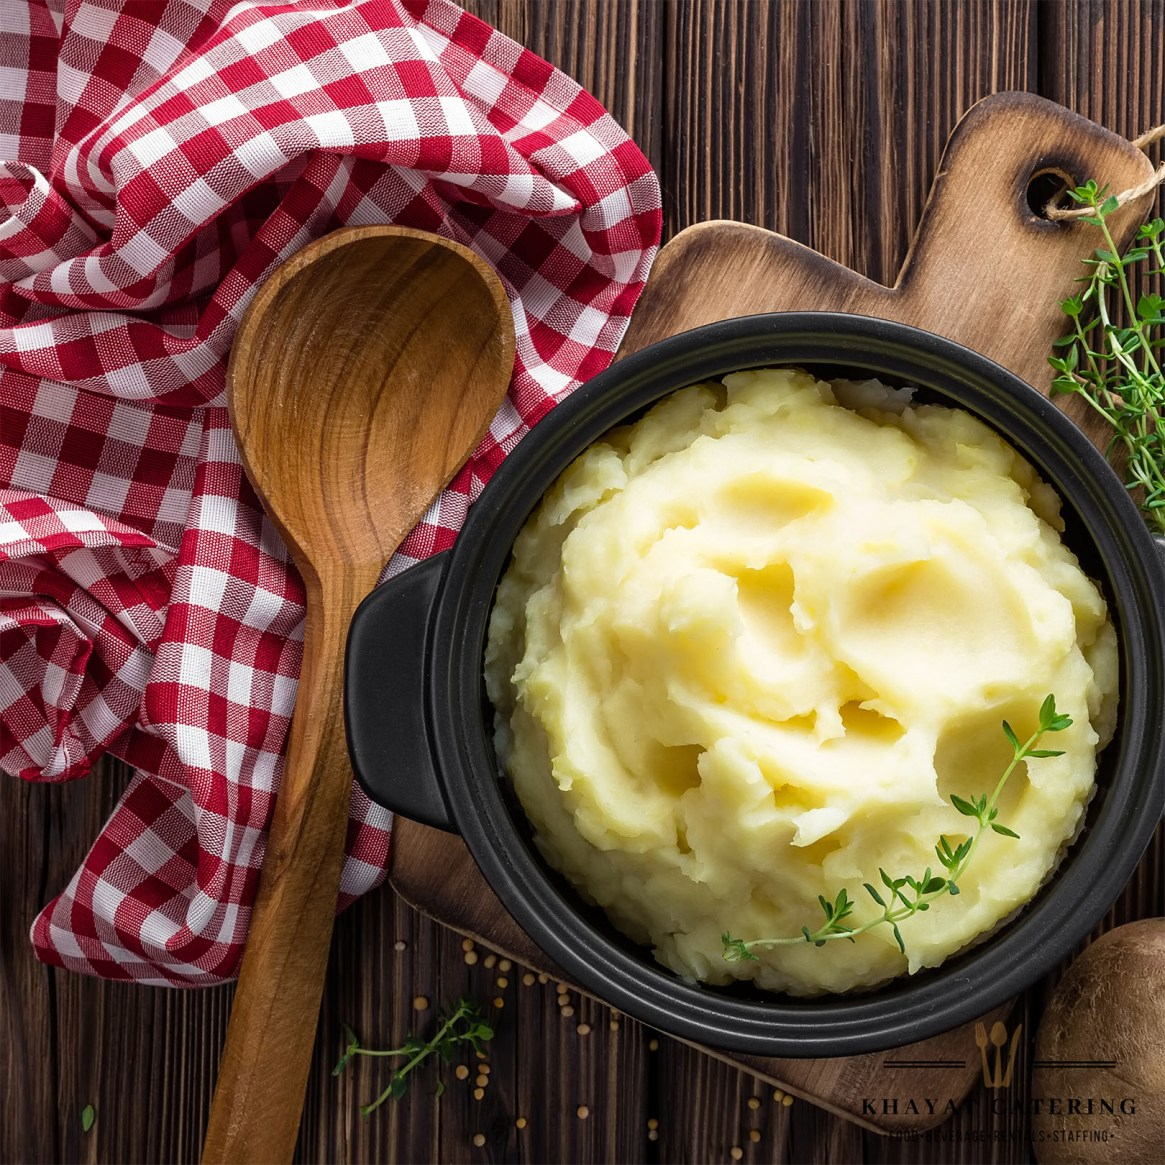 Khayat Catering truffle mashed potatoes